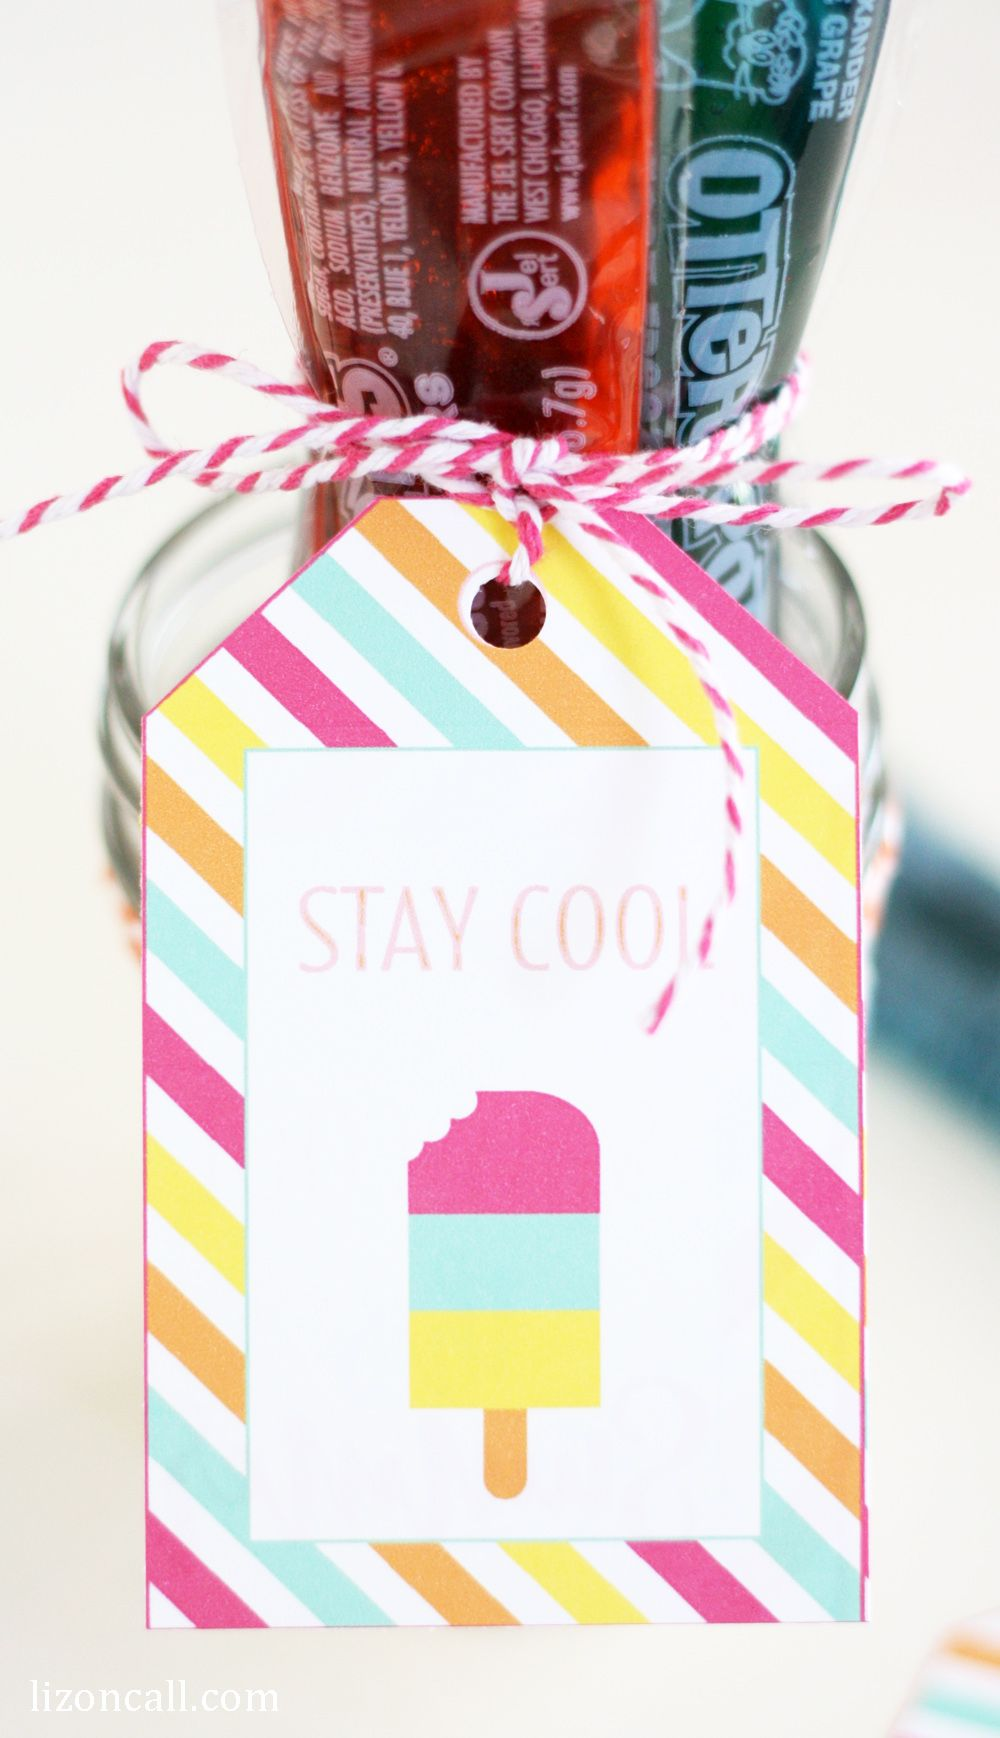 2bc86bf1c Give a summer treat to your friends and neighbors to help them stay cool  this summer. Make sure and attach these free printable stay cool summer  gift tags.